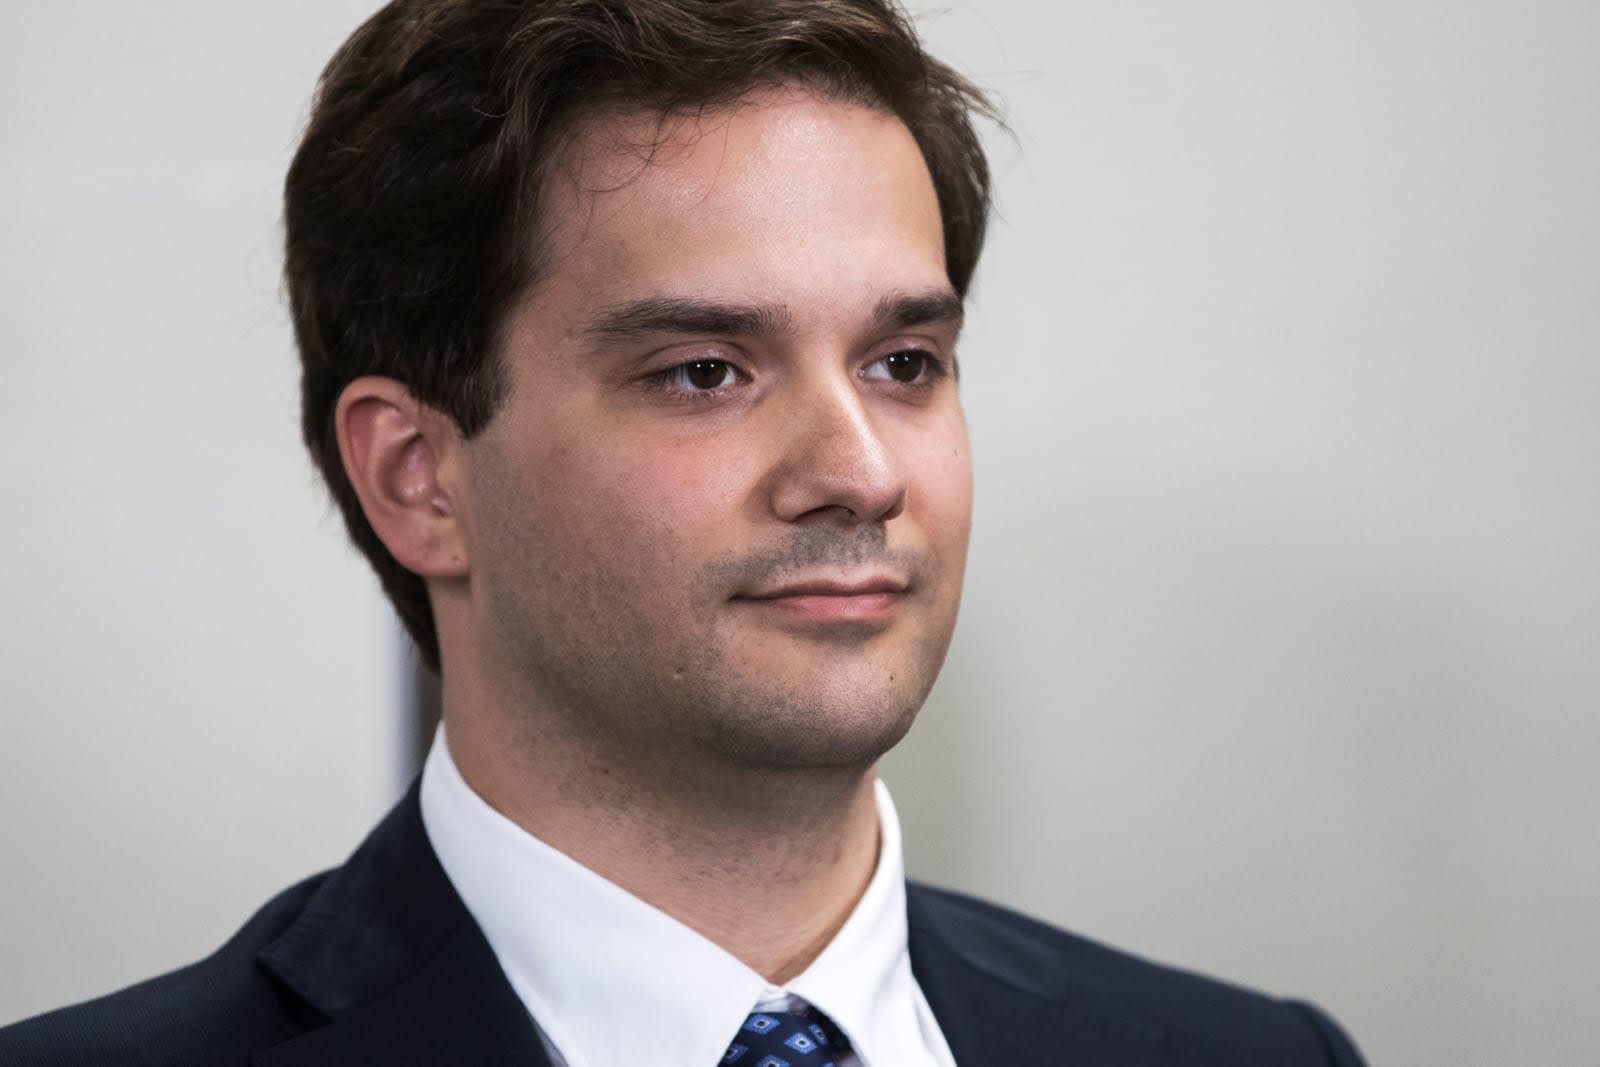 Mt  Gox CEO Mark Karpeles cleared of embezzlement charges